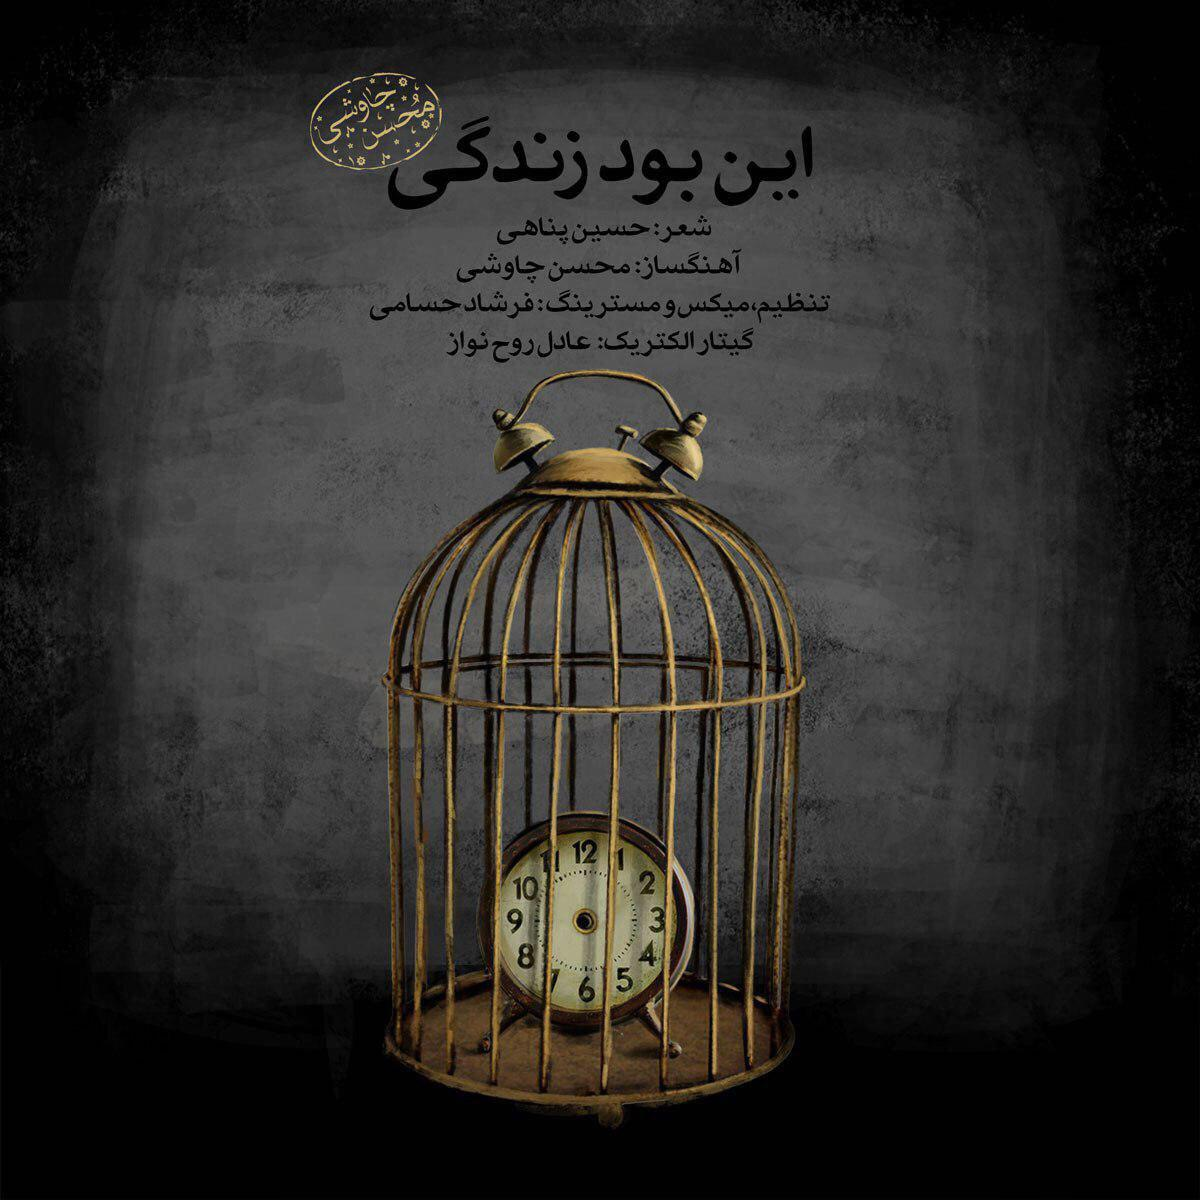 Mohsen Chavoshi – In Bood Zendegi (New Version)